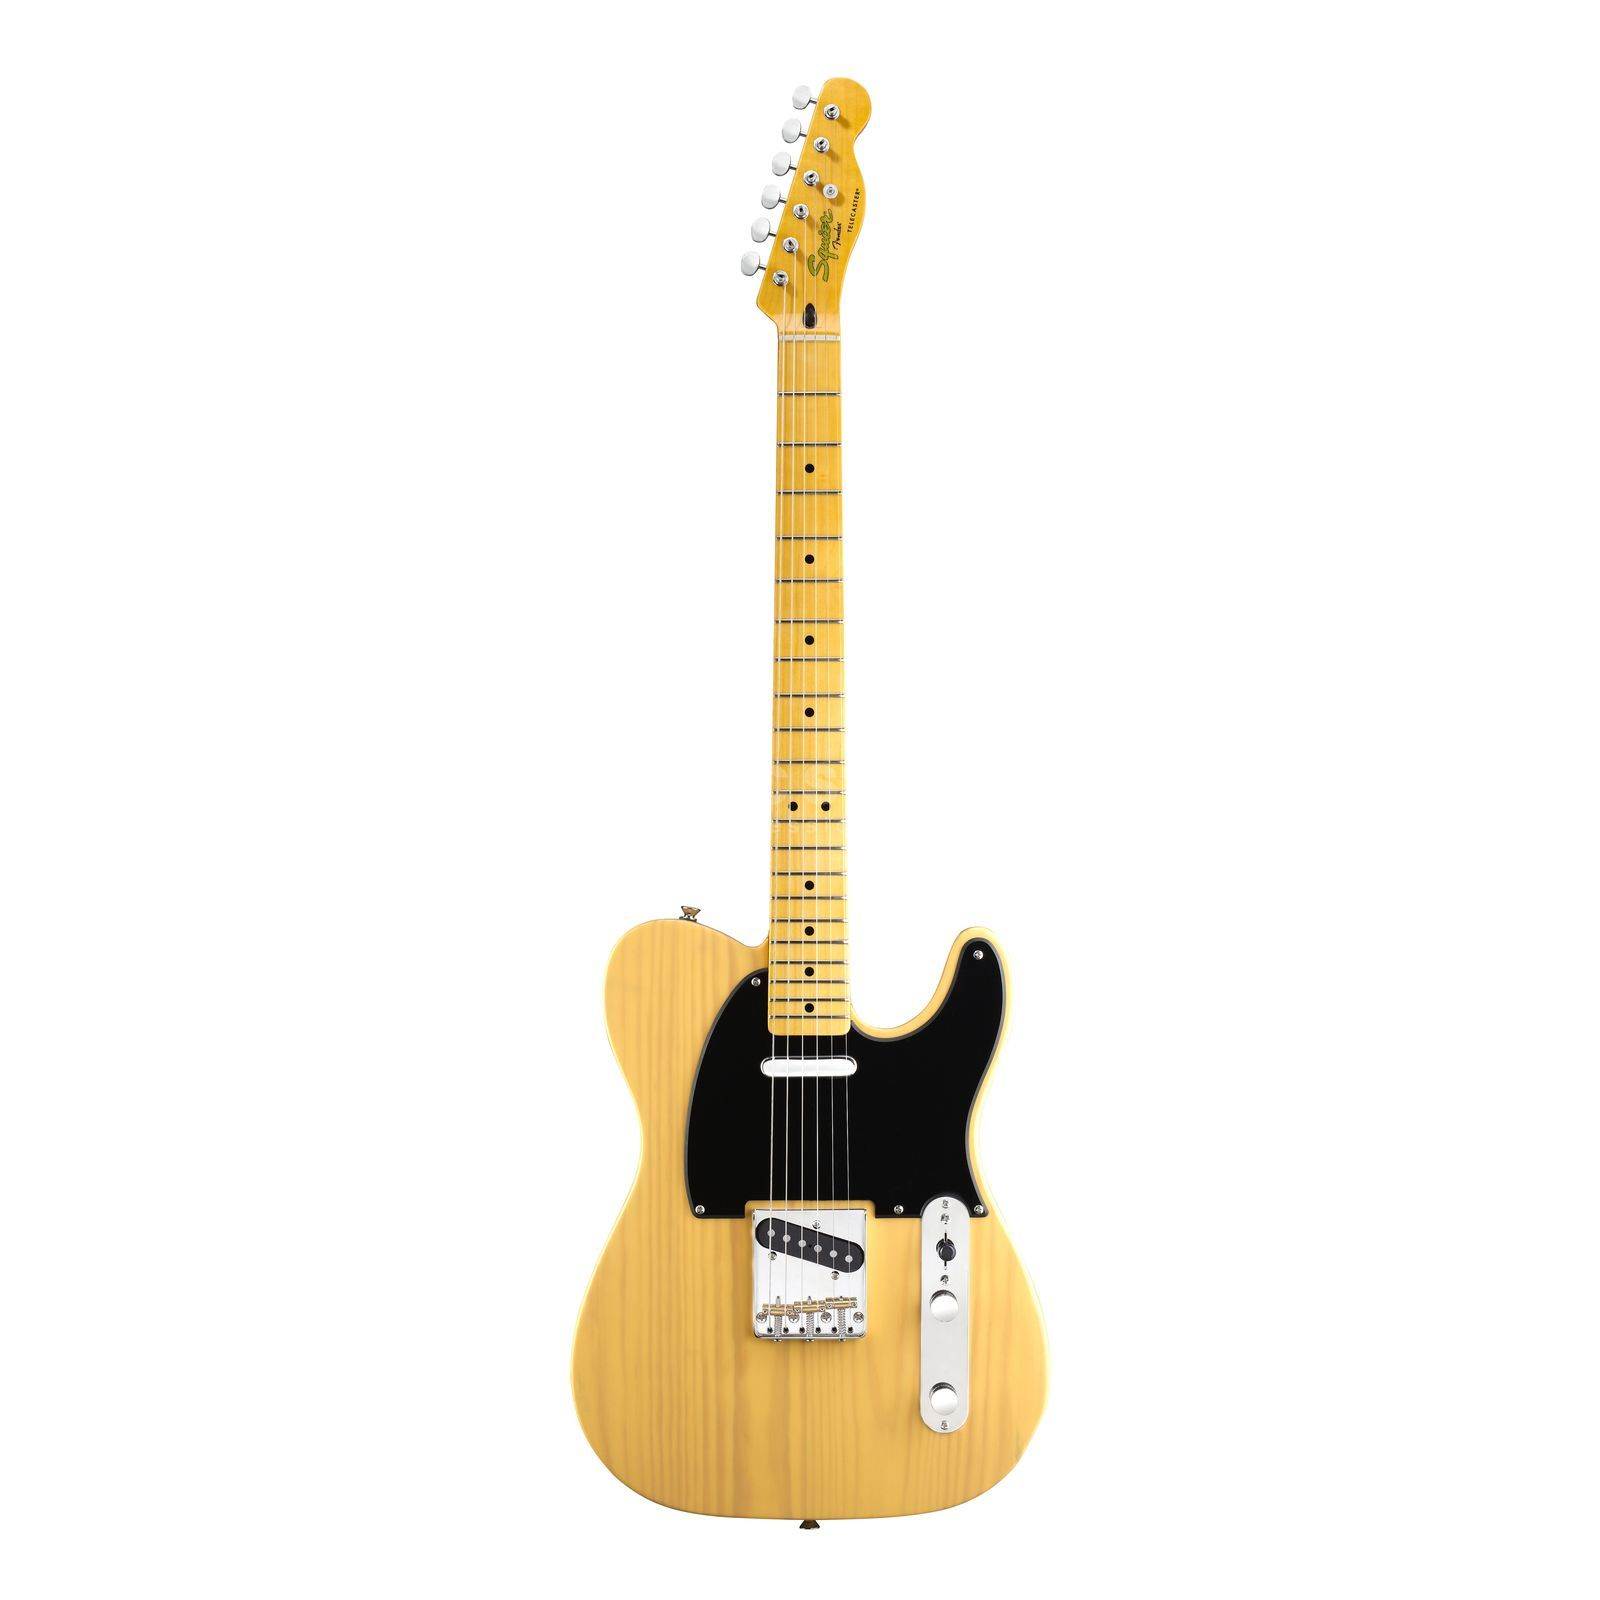 Squier by Fender Classic Vibe Telecaster 50s El ectric Guitar   Produktbillede